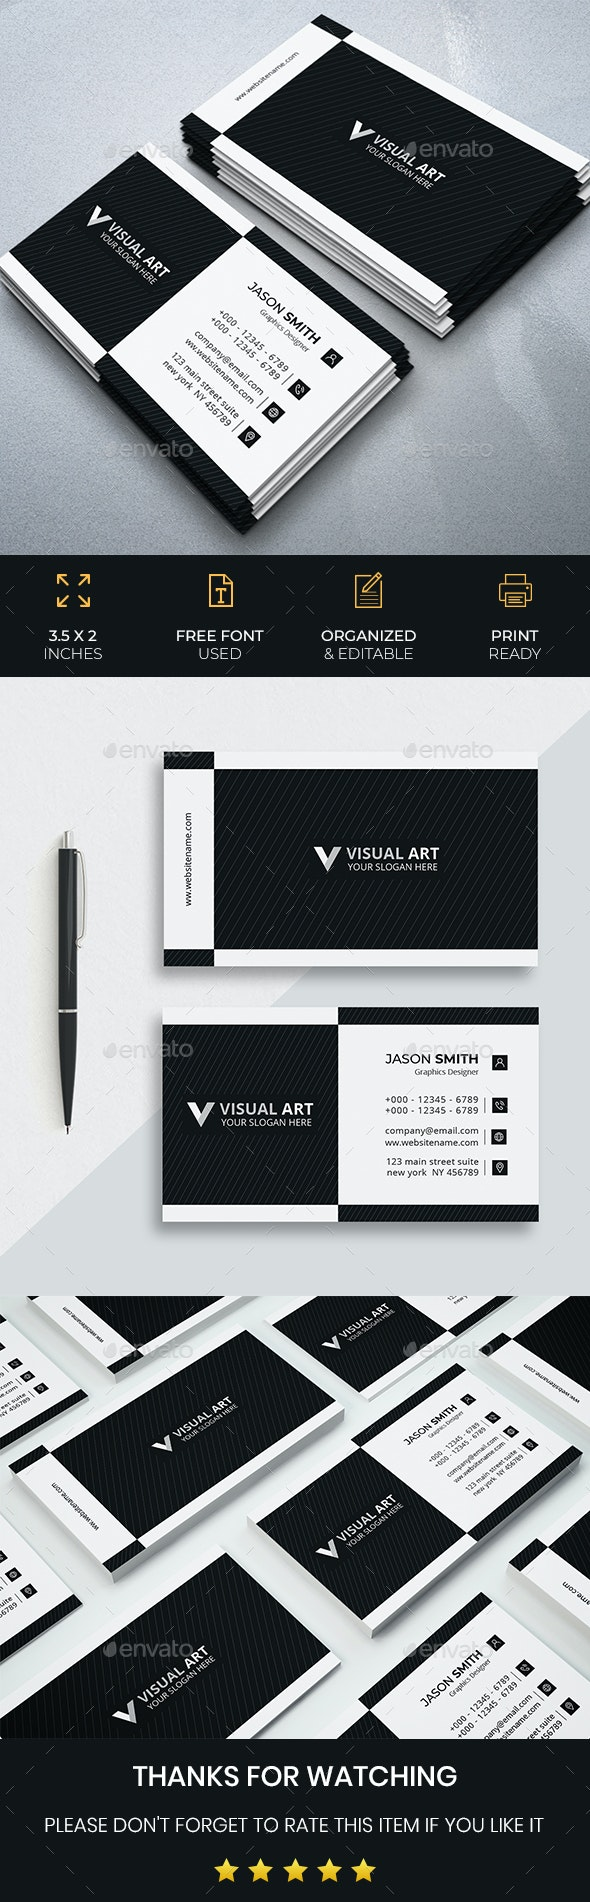 Black And White Modern Business Card - Business Cards Print Templates